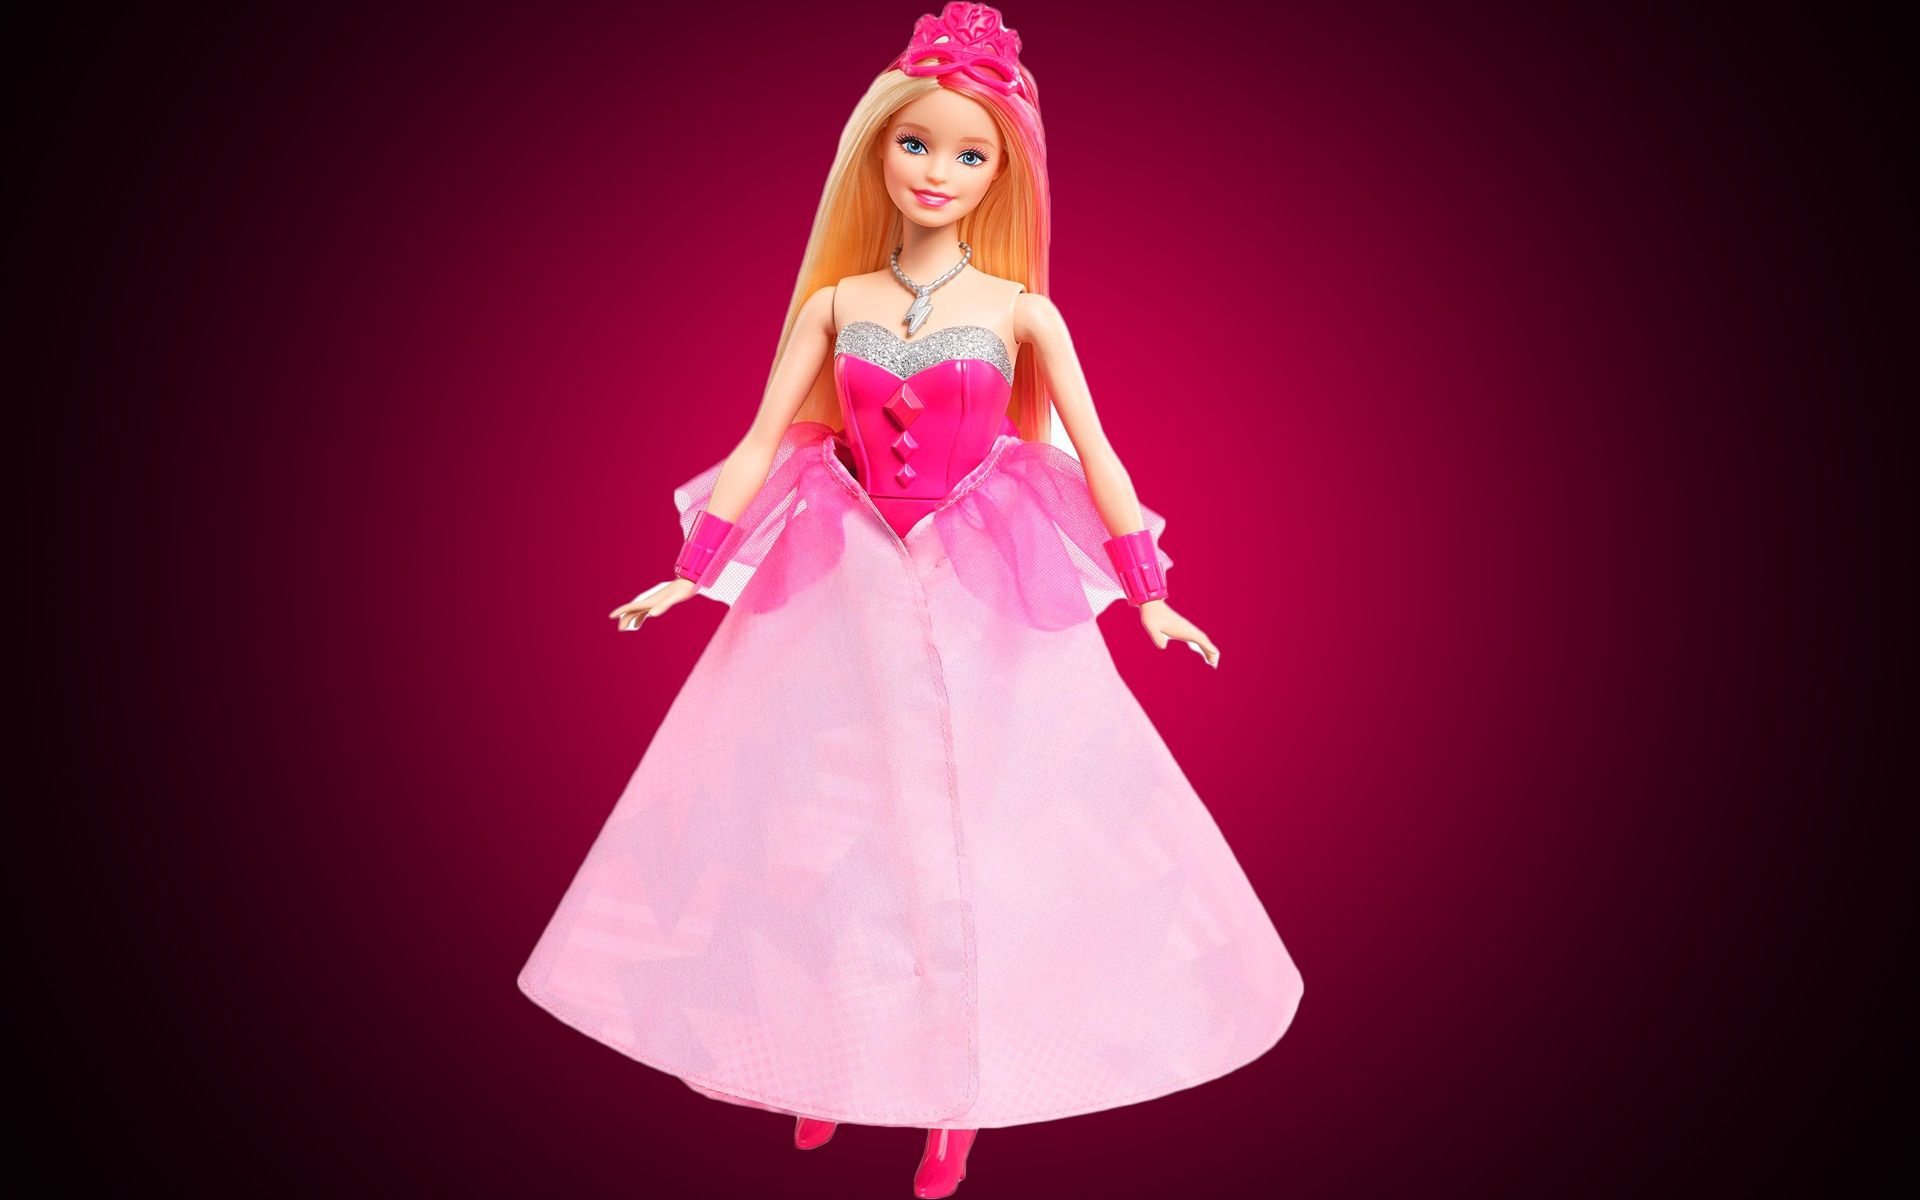 Cute Barbie Doll Wallpapers Hd Free Download